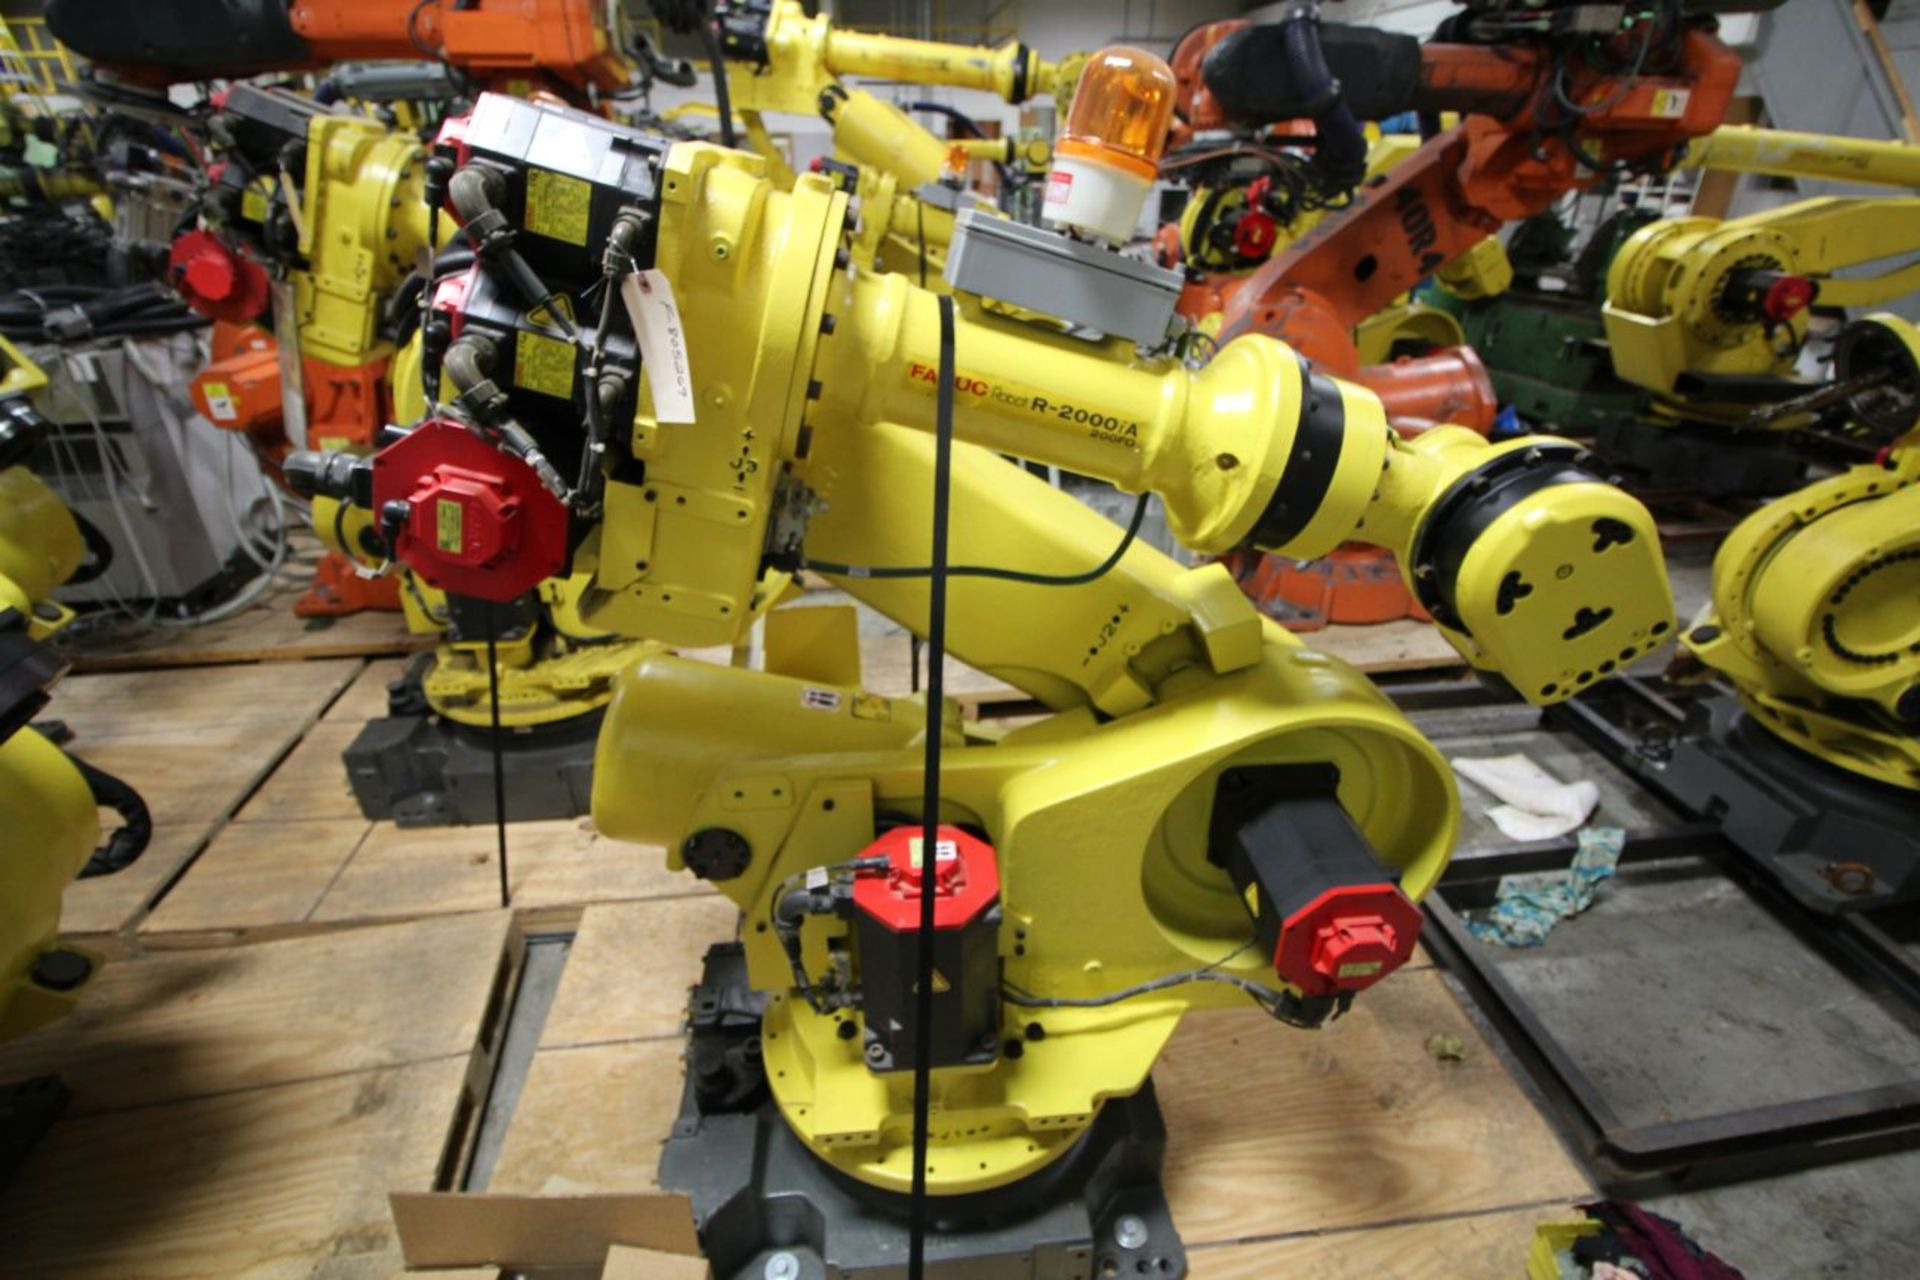 Lot 36 - FANUC ROBOT R2000iA/200FO WITH R-J3iB CONTROLS, TEACH & CABLES, YEAR 2005, SN 805269, COMP REFURBED